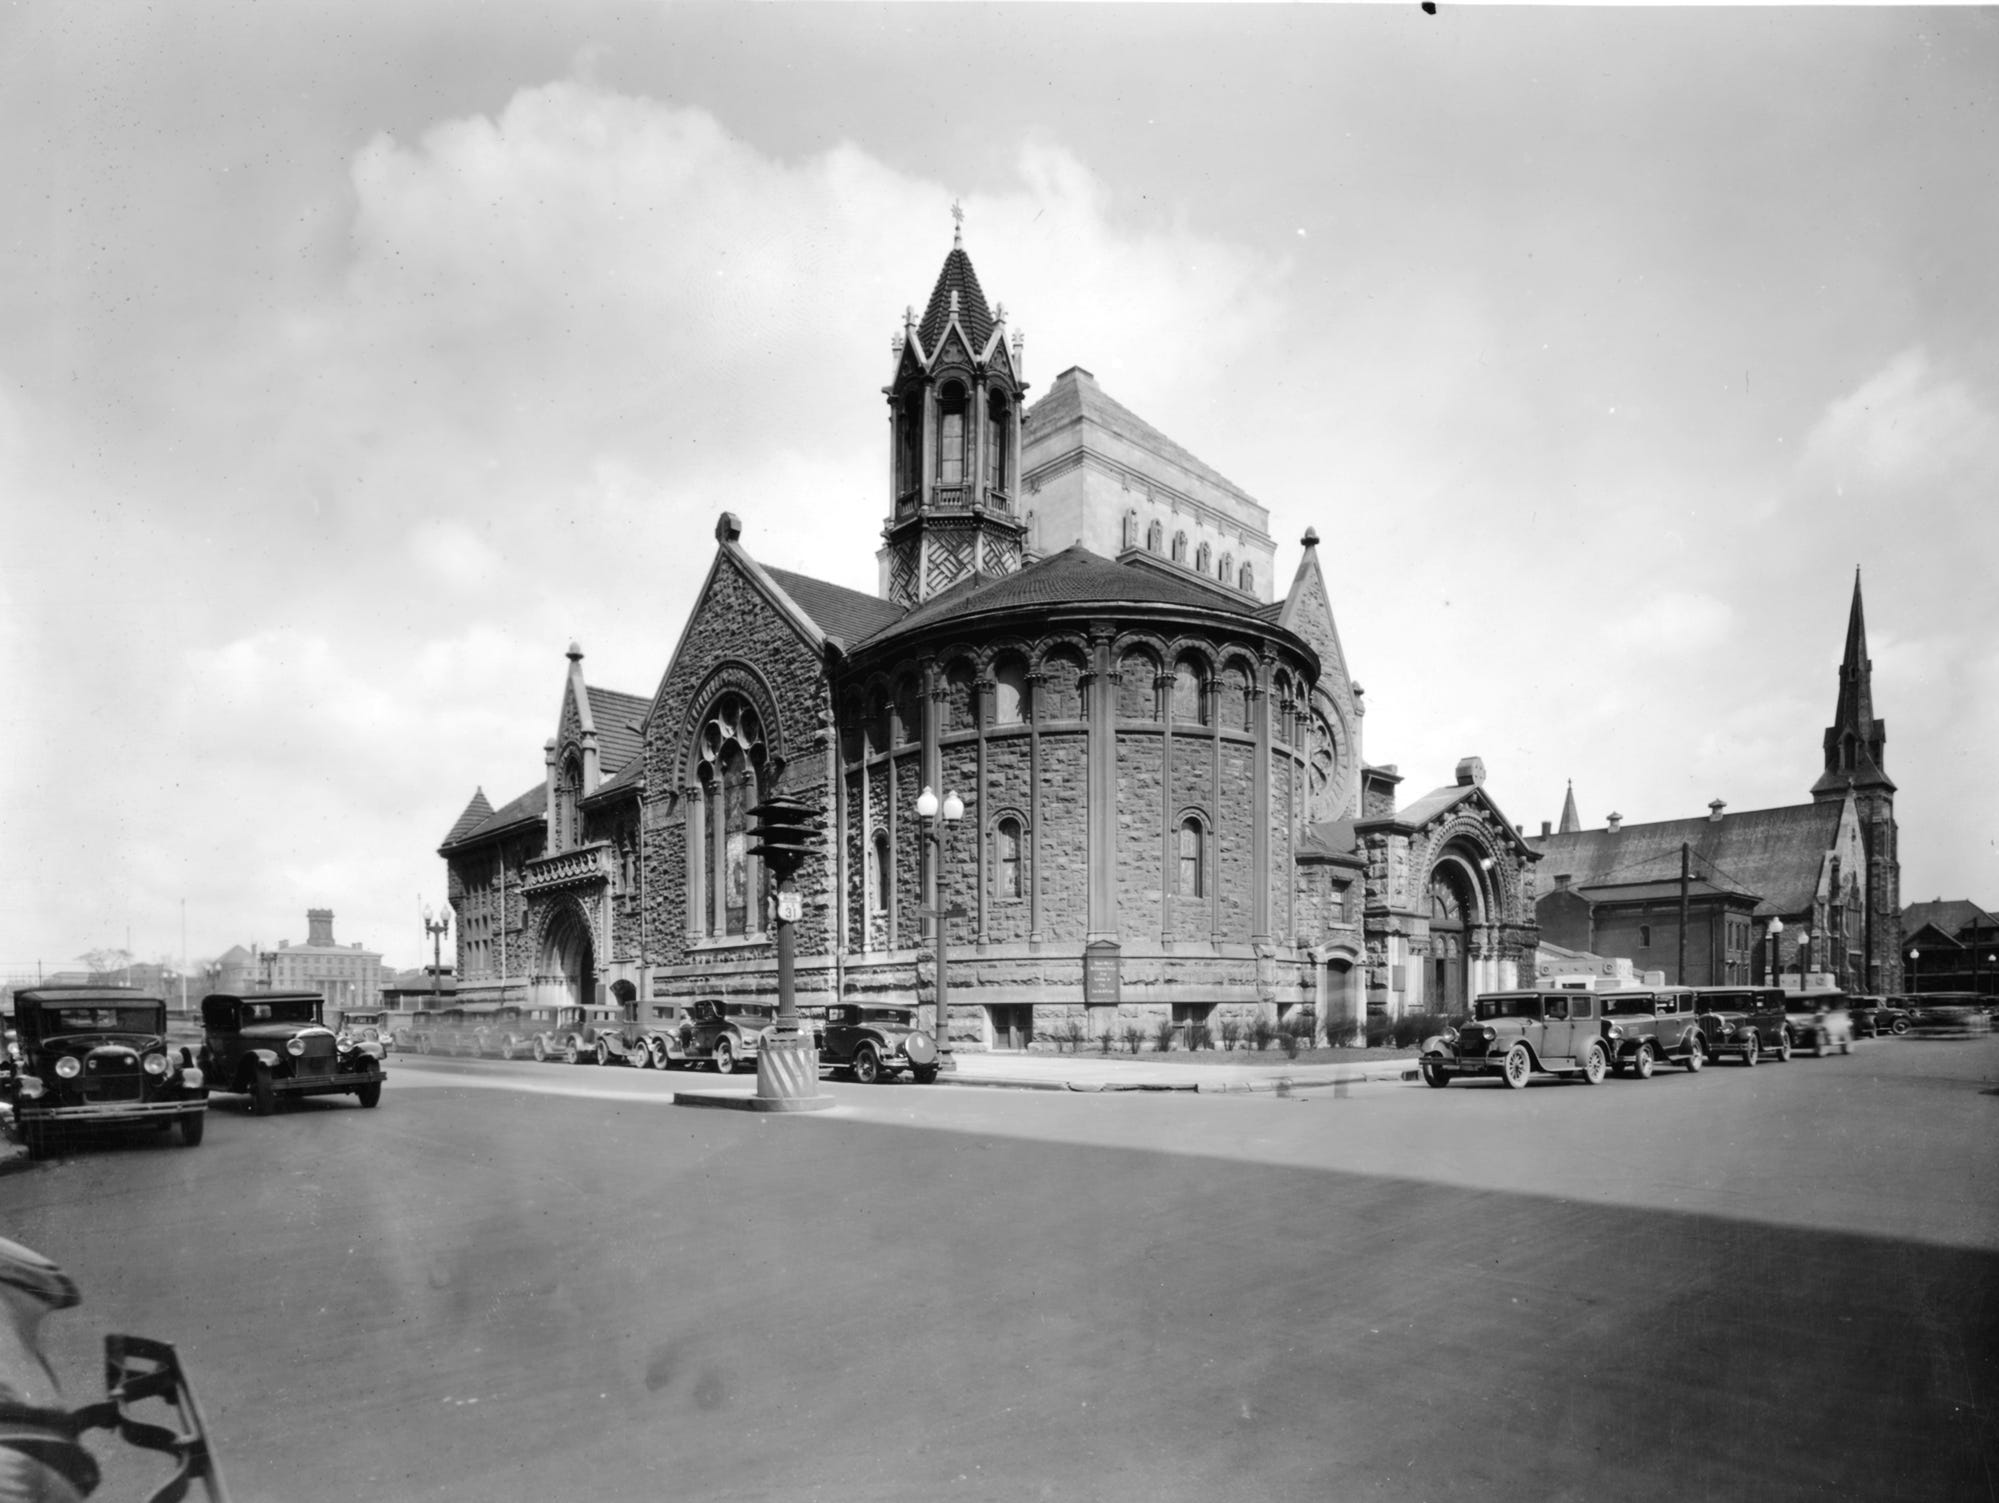 Second Presbyterian Church and First Baptist Church on March 24, 1929. Both churches flanked the Indiana War Memorial and the congregations eventually moved to the suburbs. Both churches were demolished in 1960.